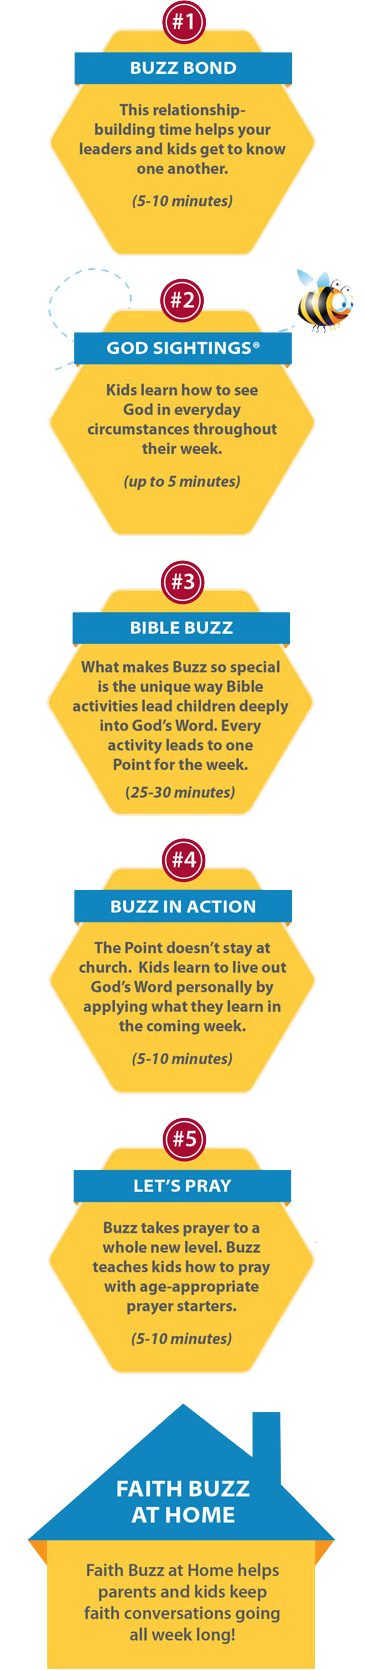 Buzz lesson format chart showing the step-by-step flow of a Buzz Sunday School session